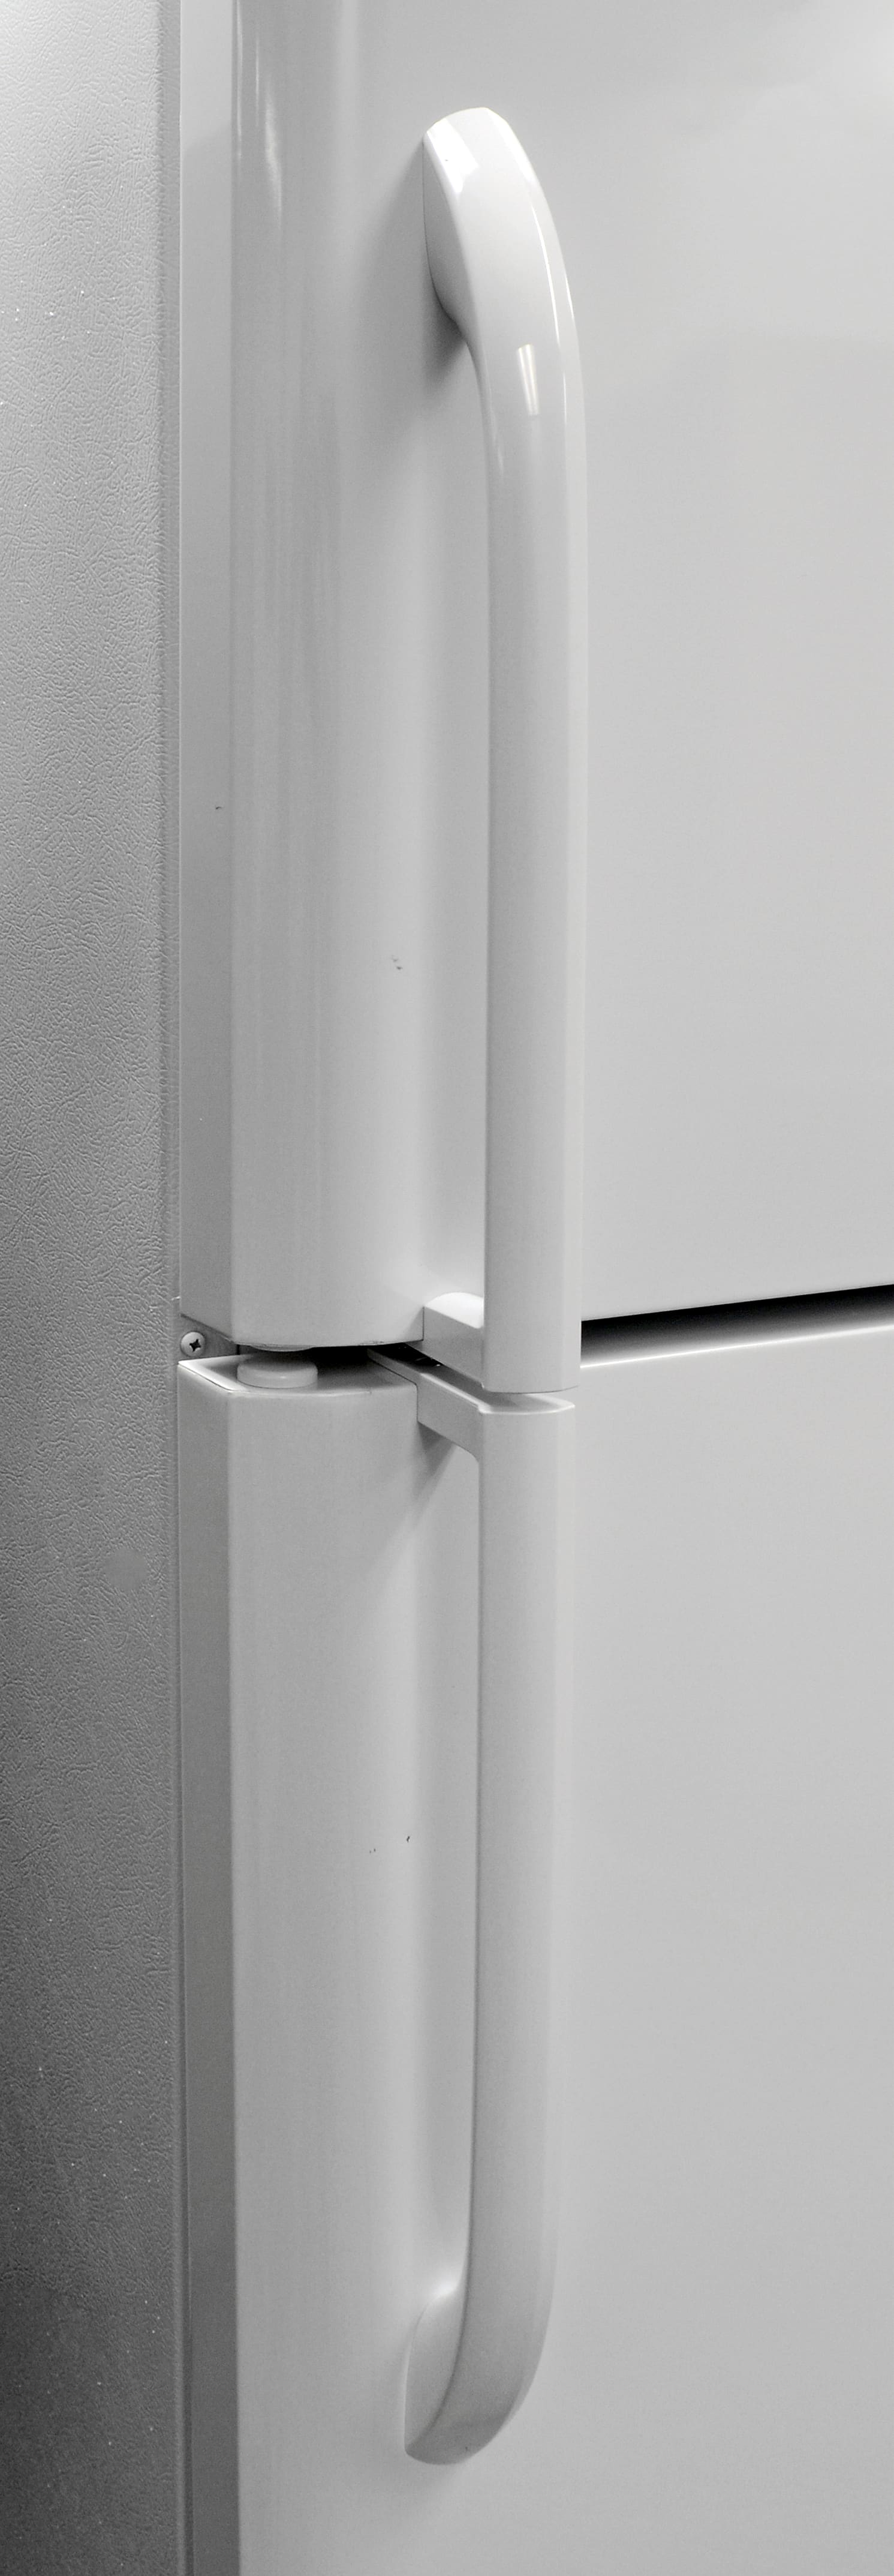 The Frigidaire FFHT2131QP's plastic handles are easy to grip.